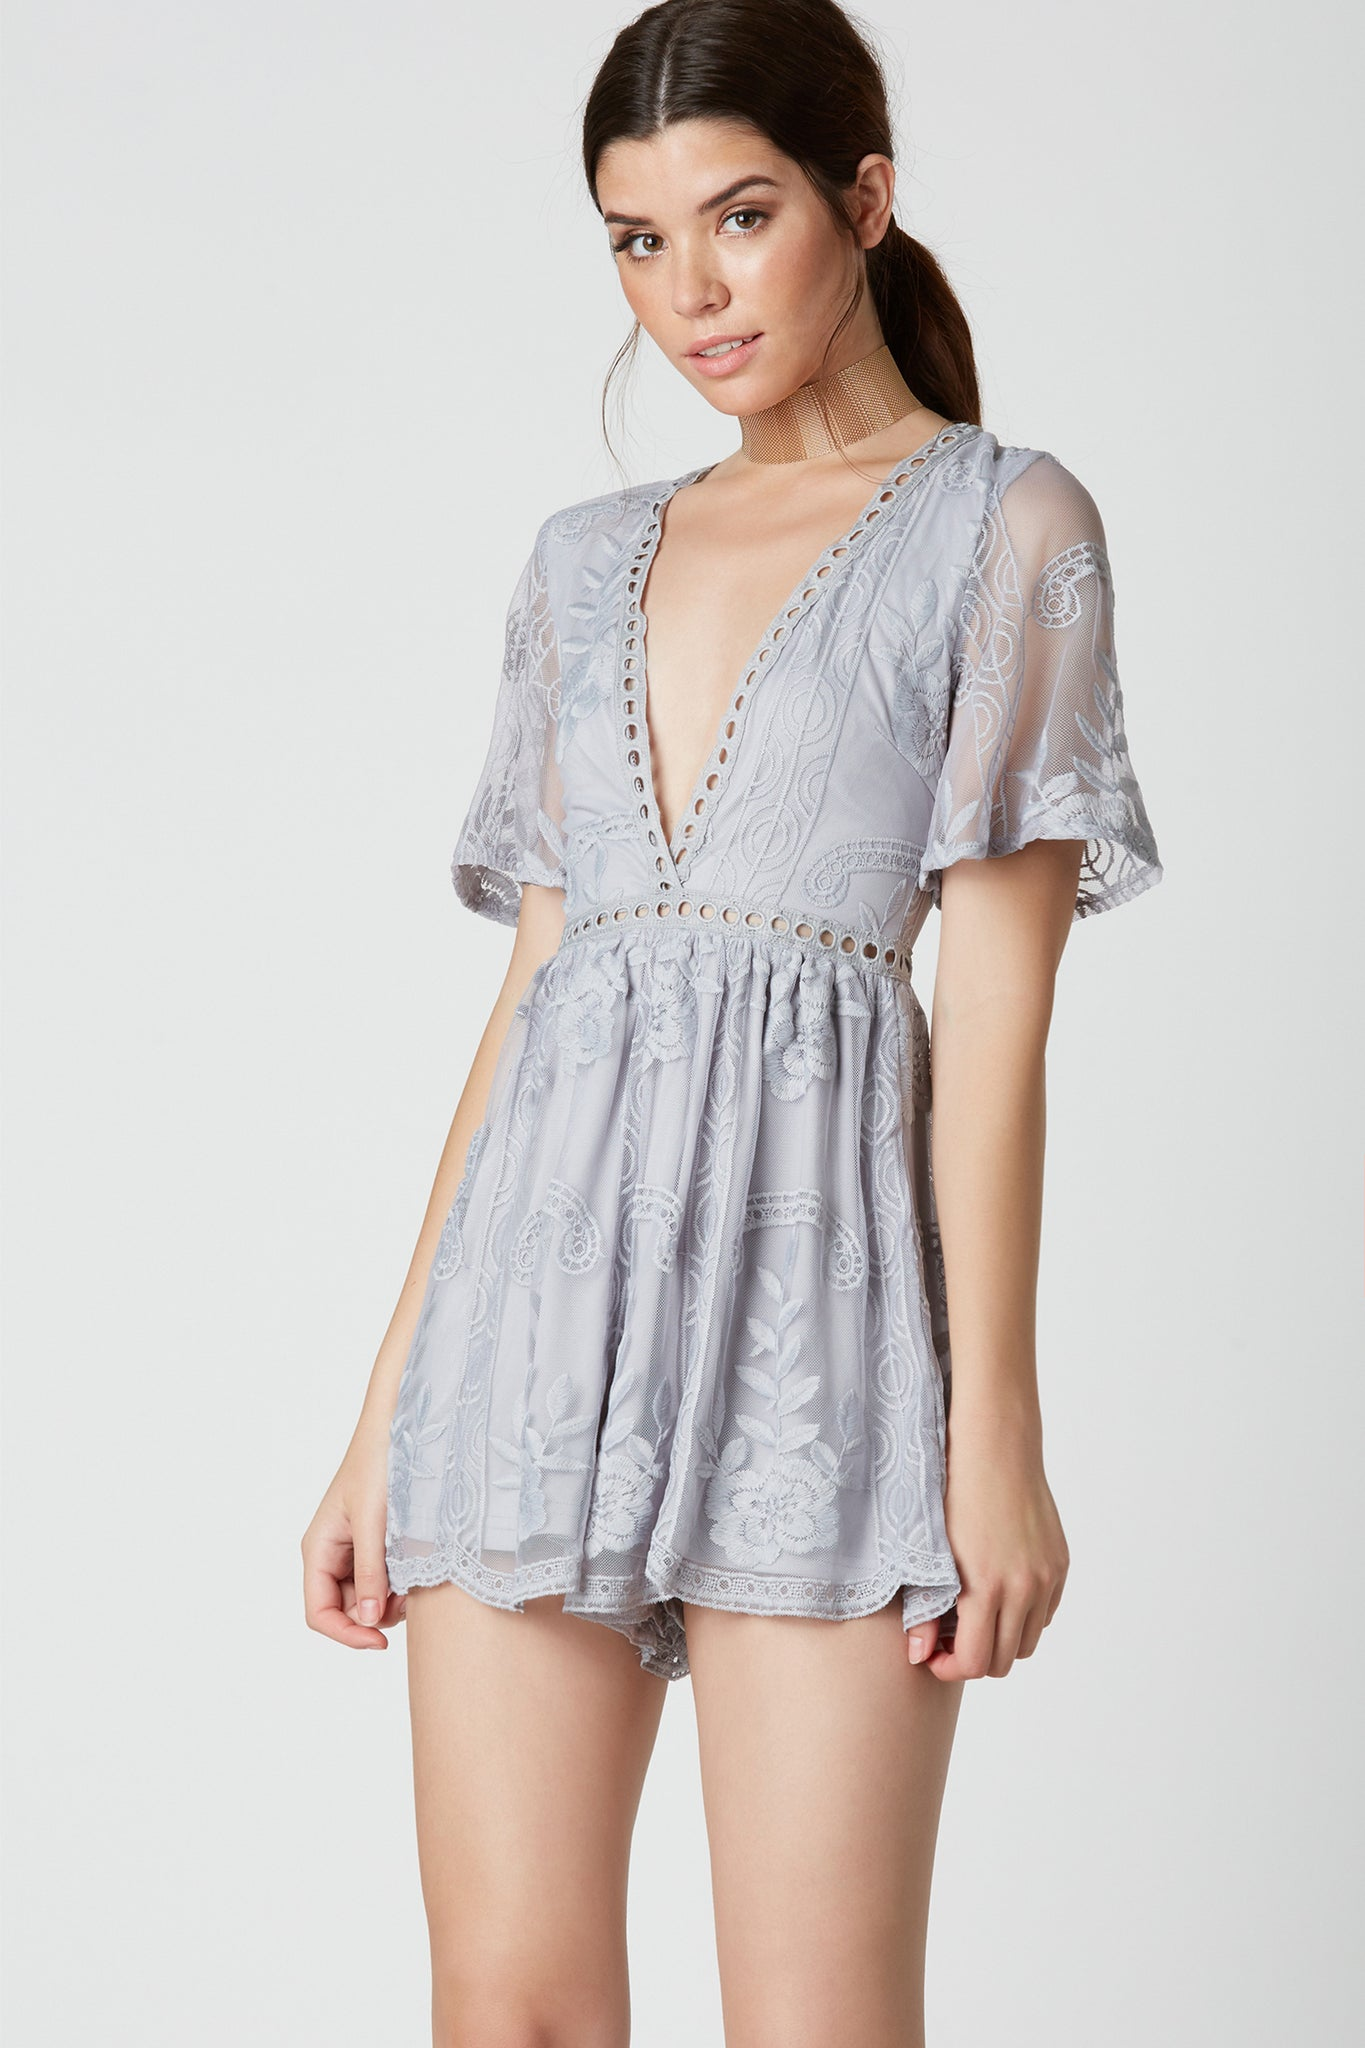 Stunning short sleeve romper with deep V-neckling and peek-a-boo crochet panel detailing. Fully lining with mesh overlay and intricate embroidery throughout. Scalloped hem and hidden back zip closure.